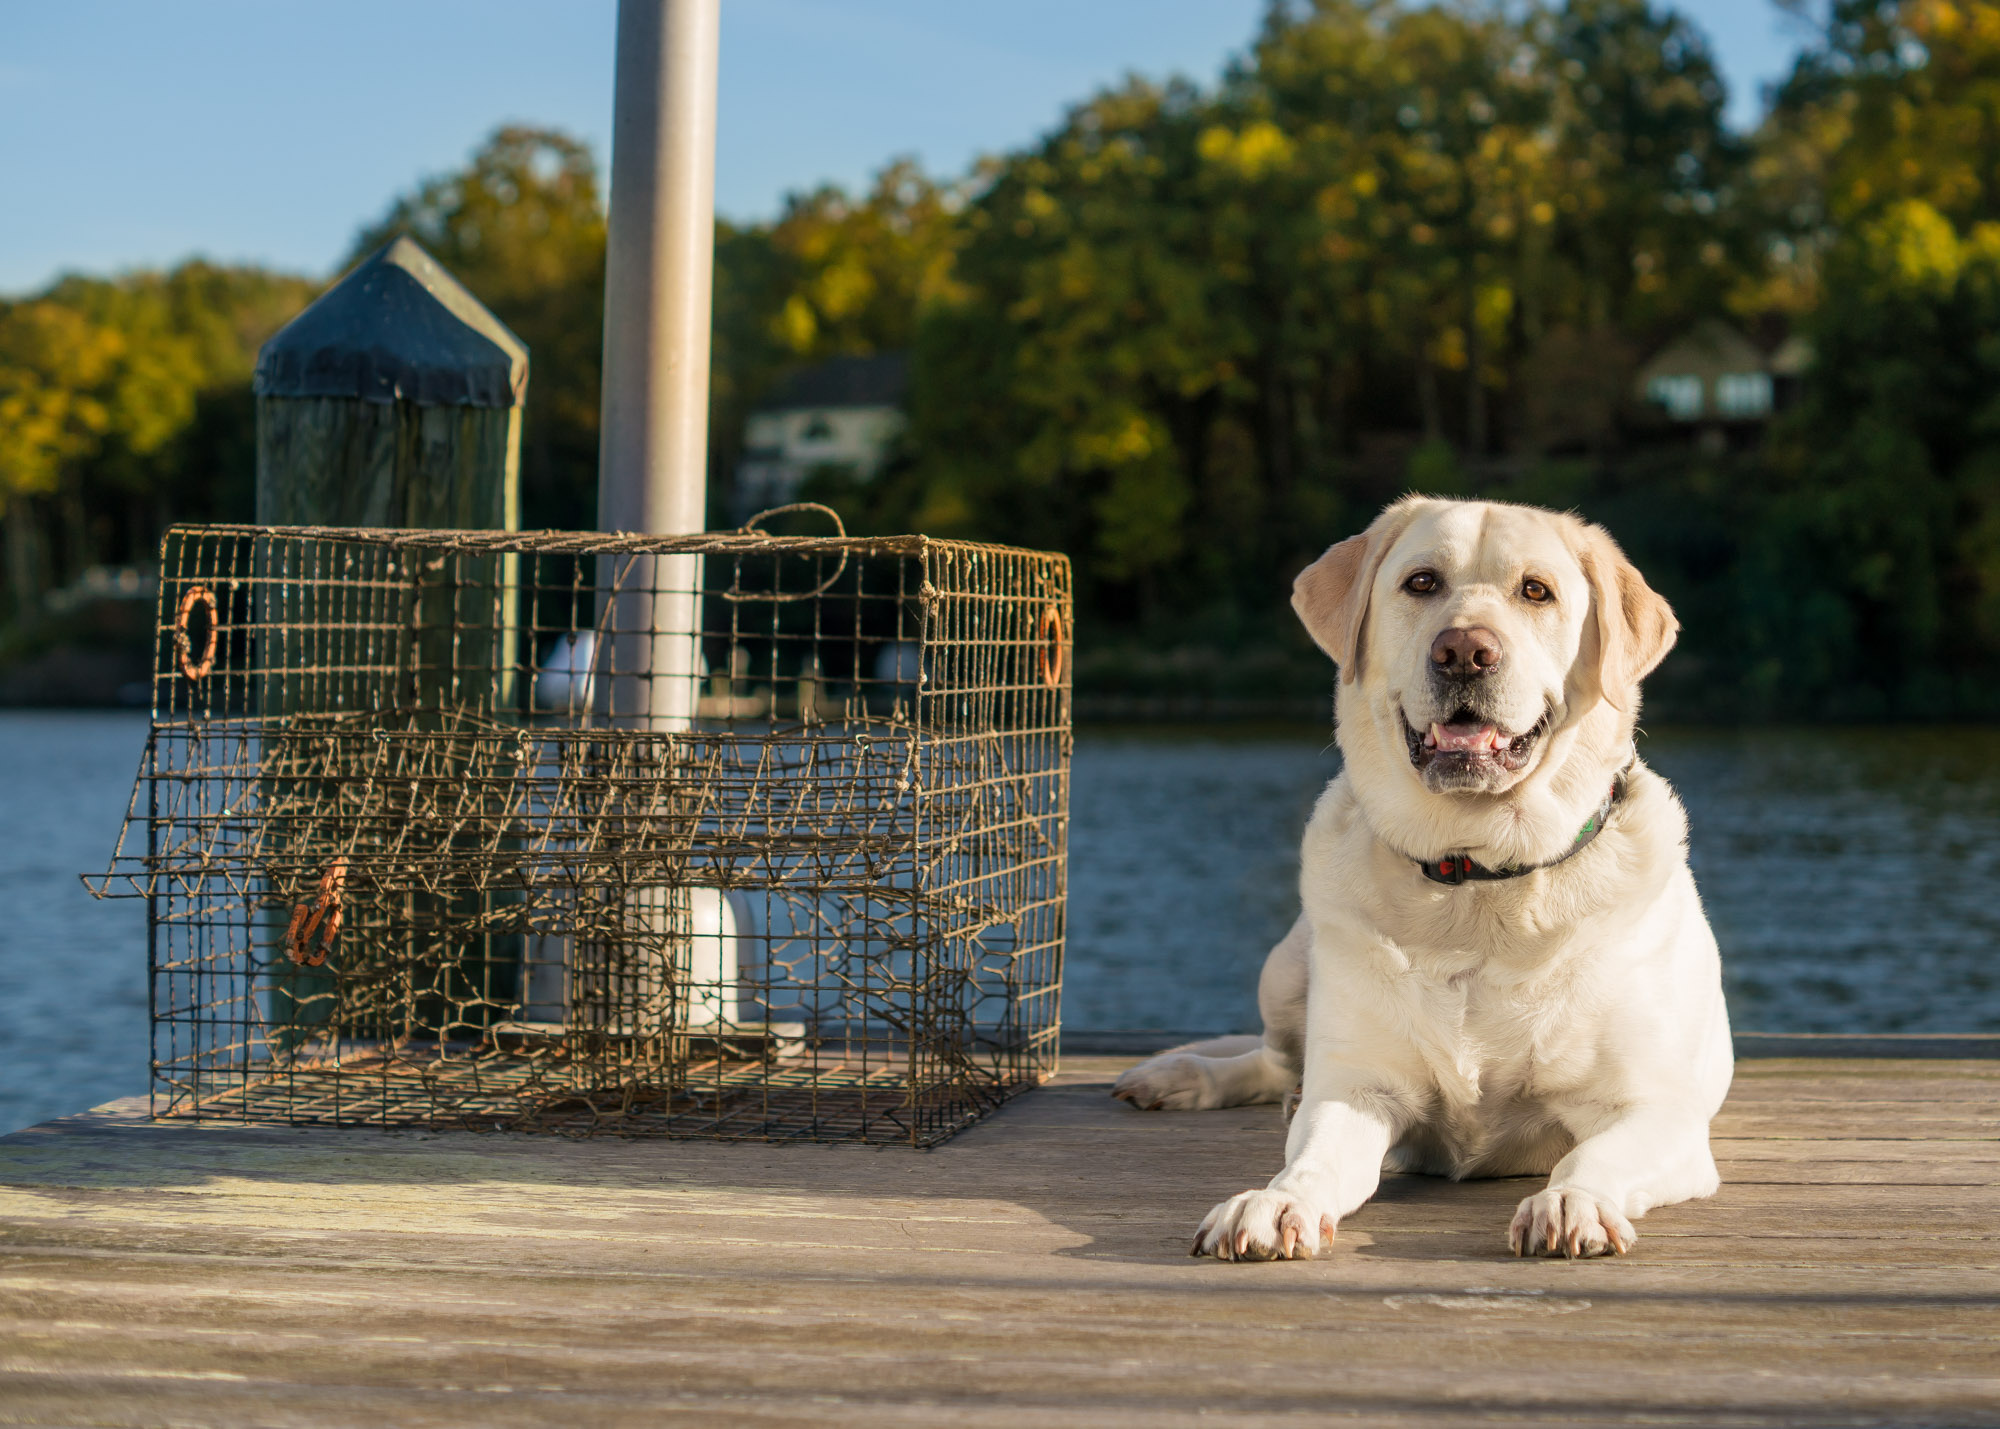 Labrador Retriever Near The Bay on the Water in Maryland